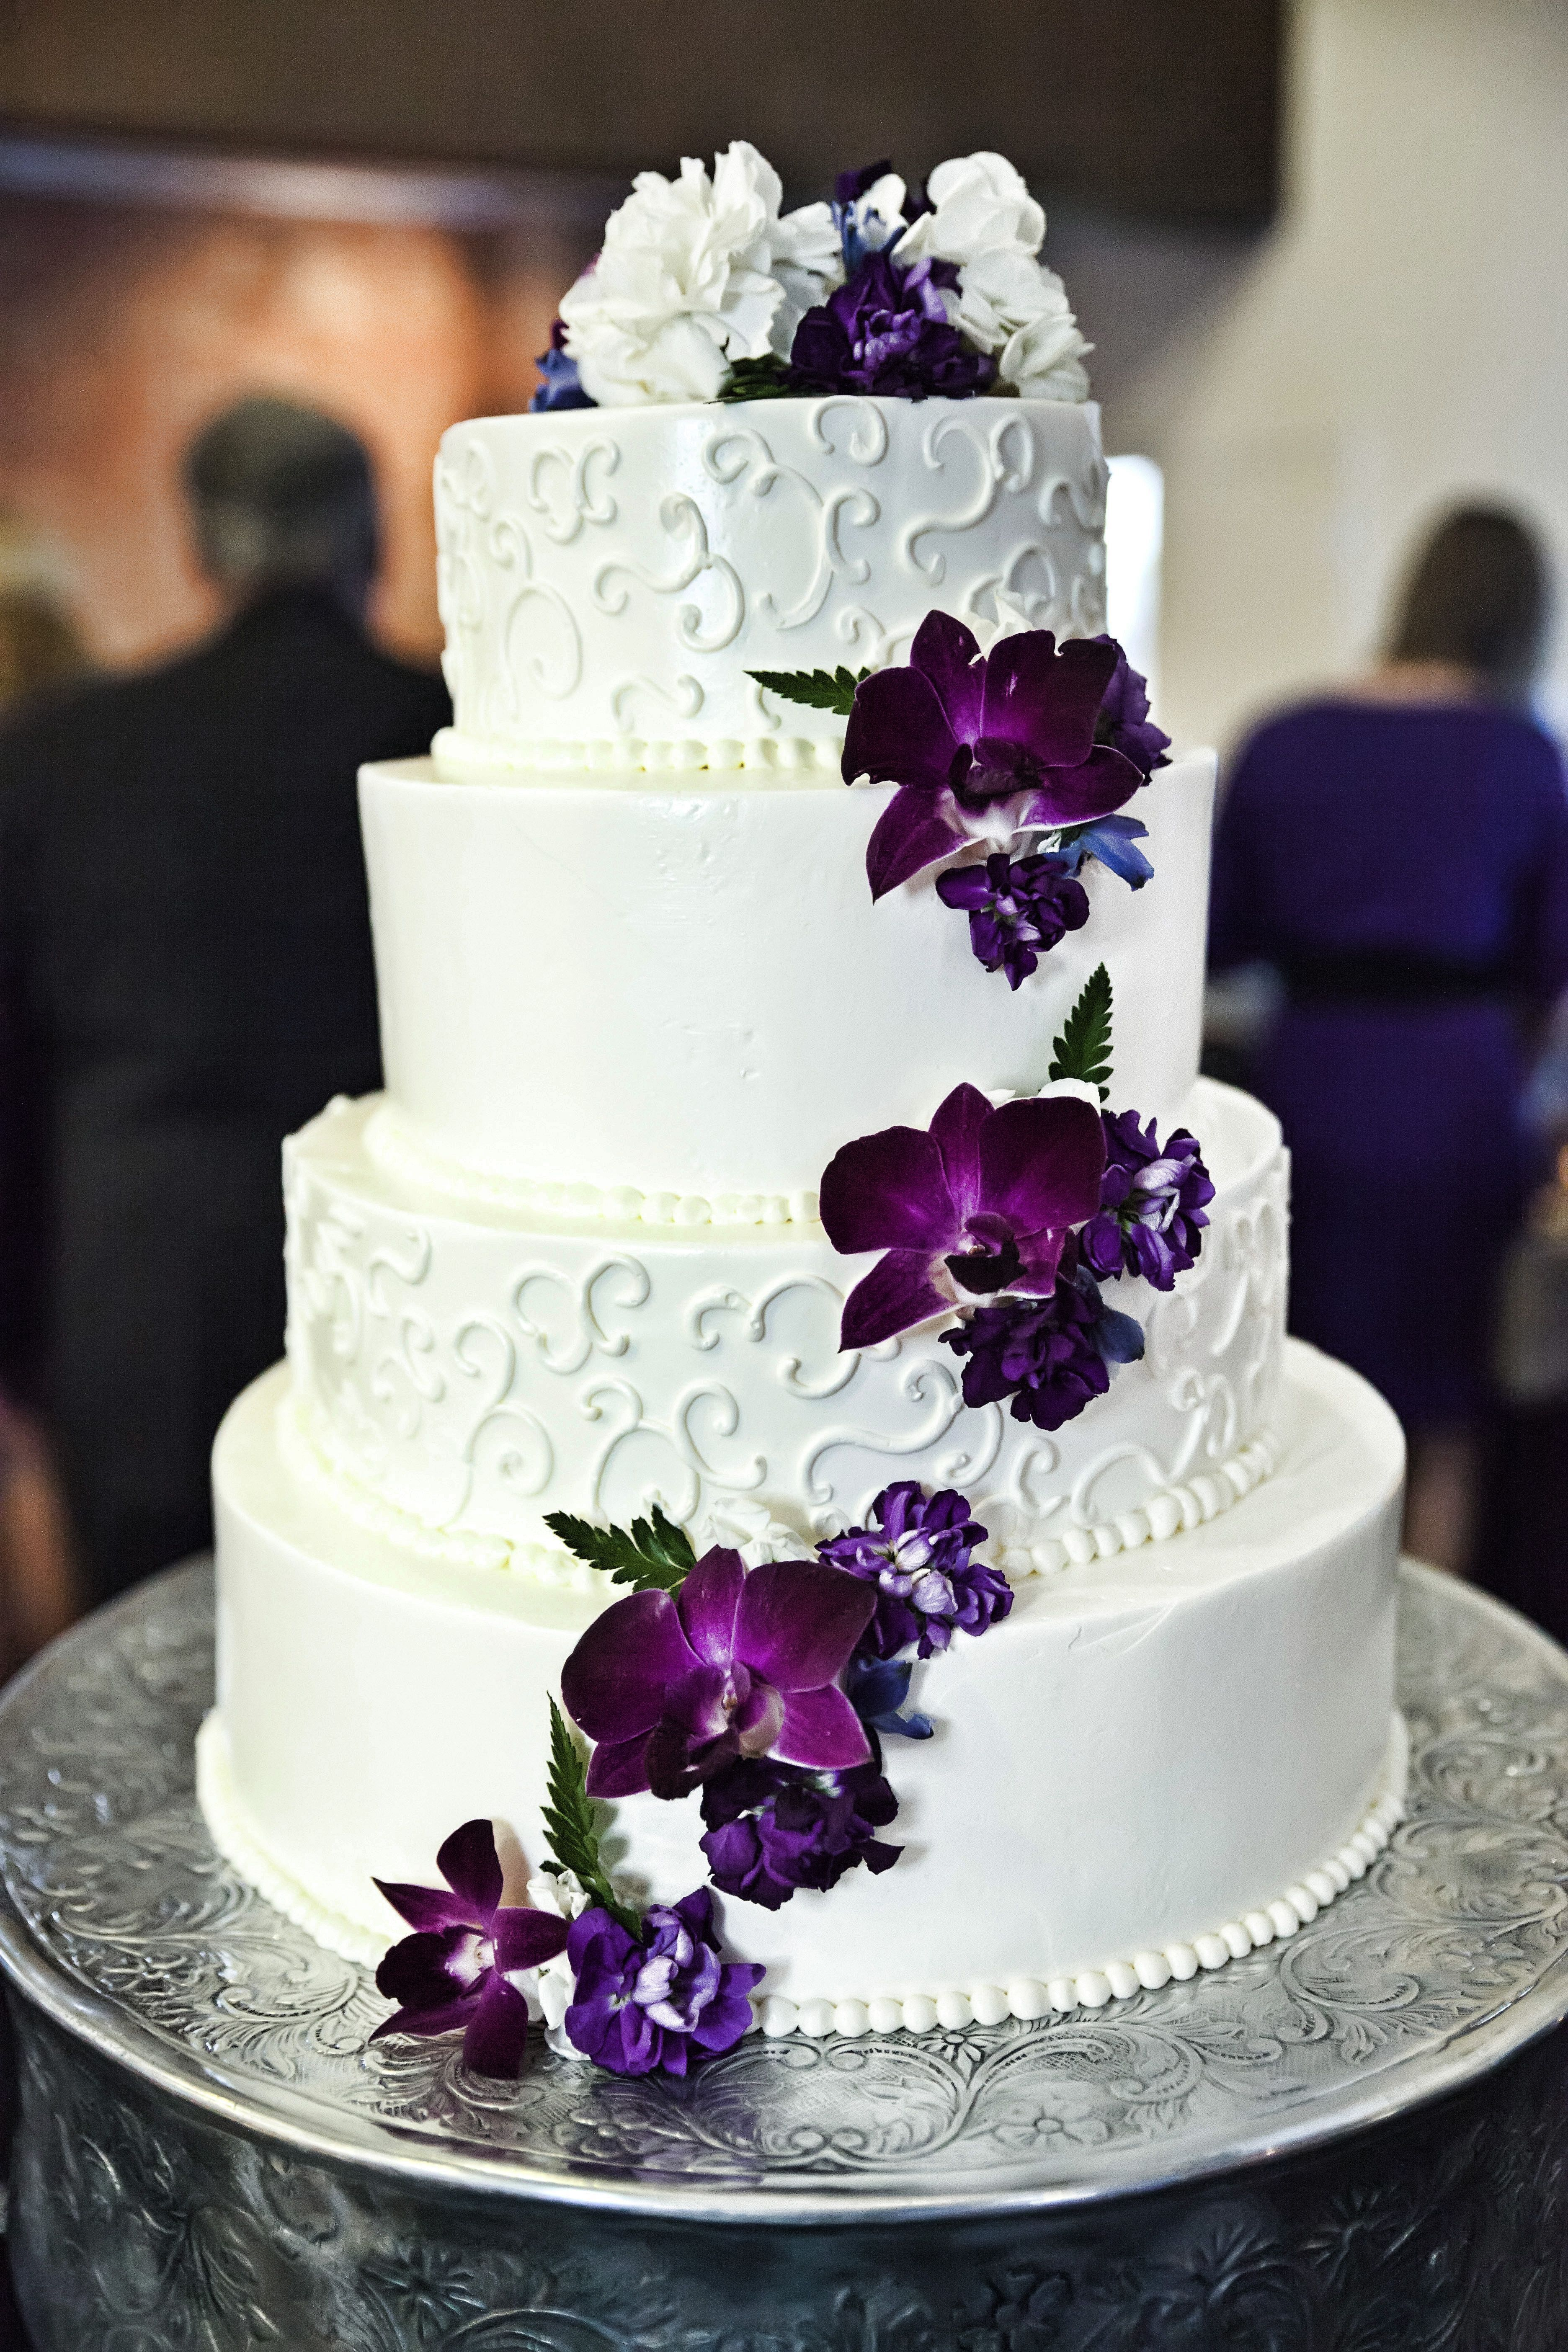 White and purple wedding cake with cascading purple flowers     White and purple wedding cake with cascading purple flowers   Copyright   Bello Romance Photography  floralweddingcakes